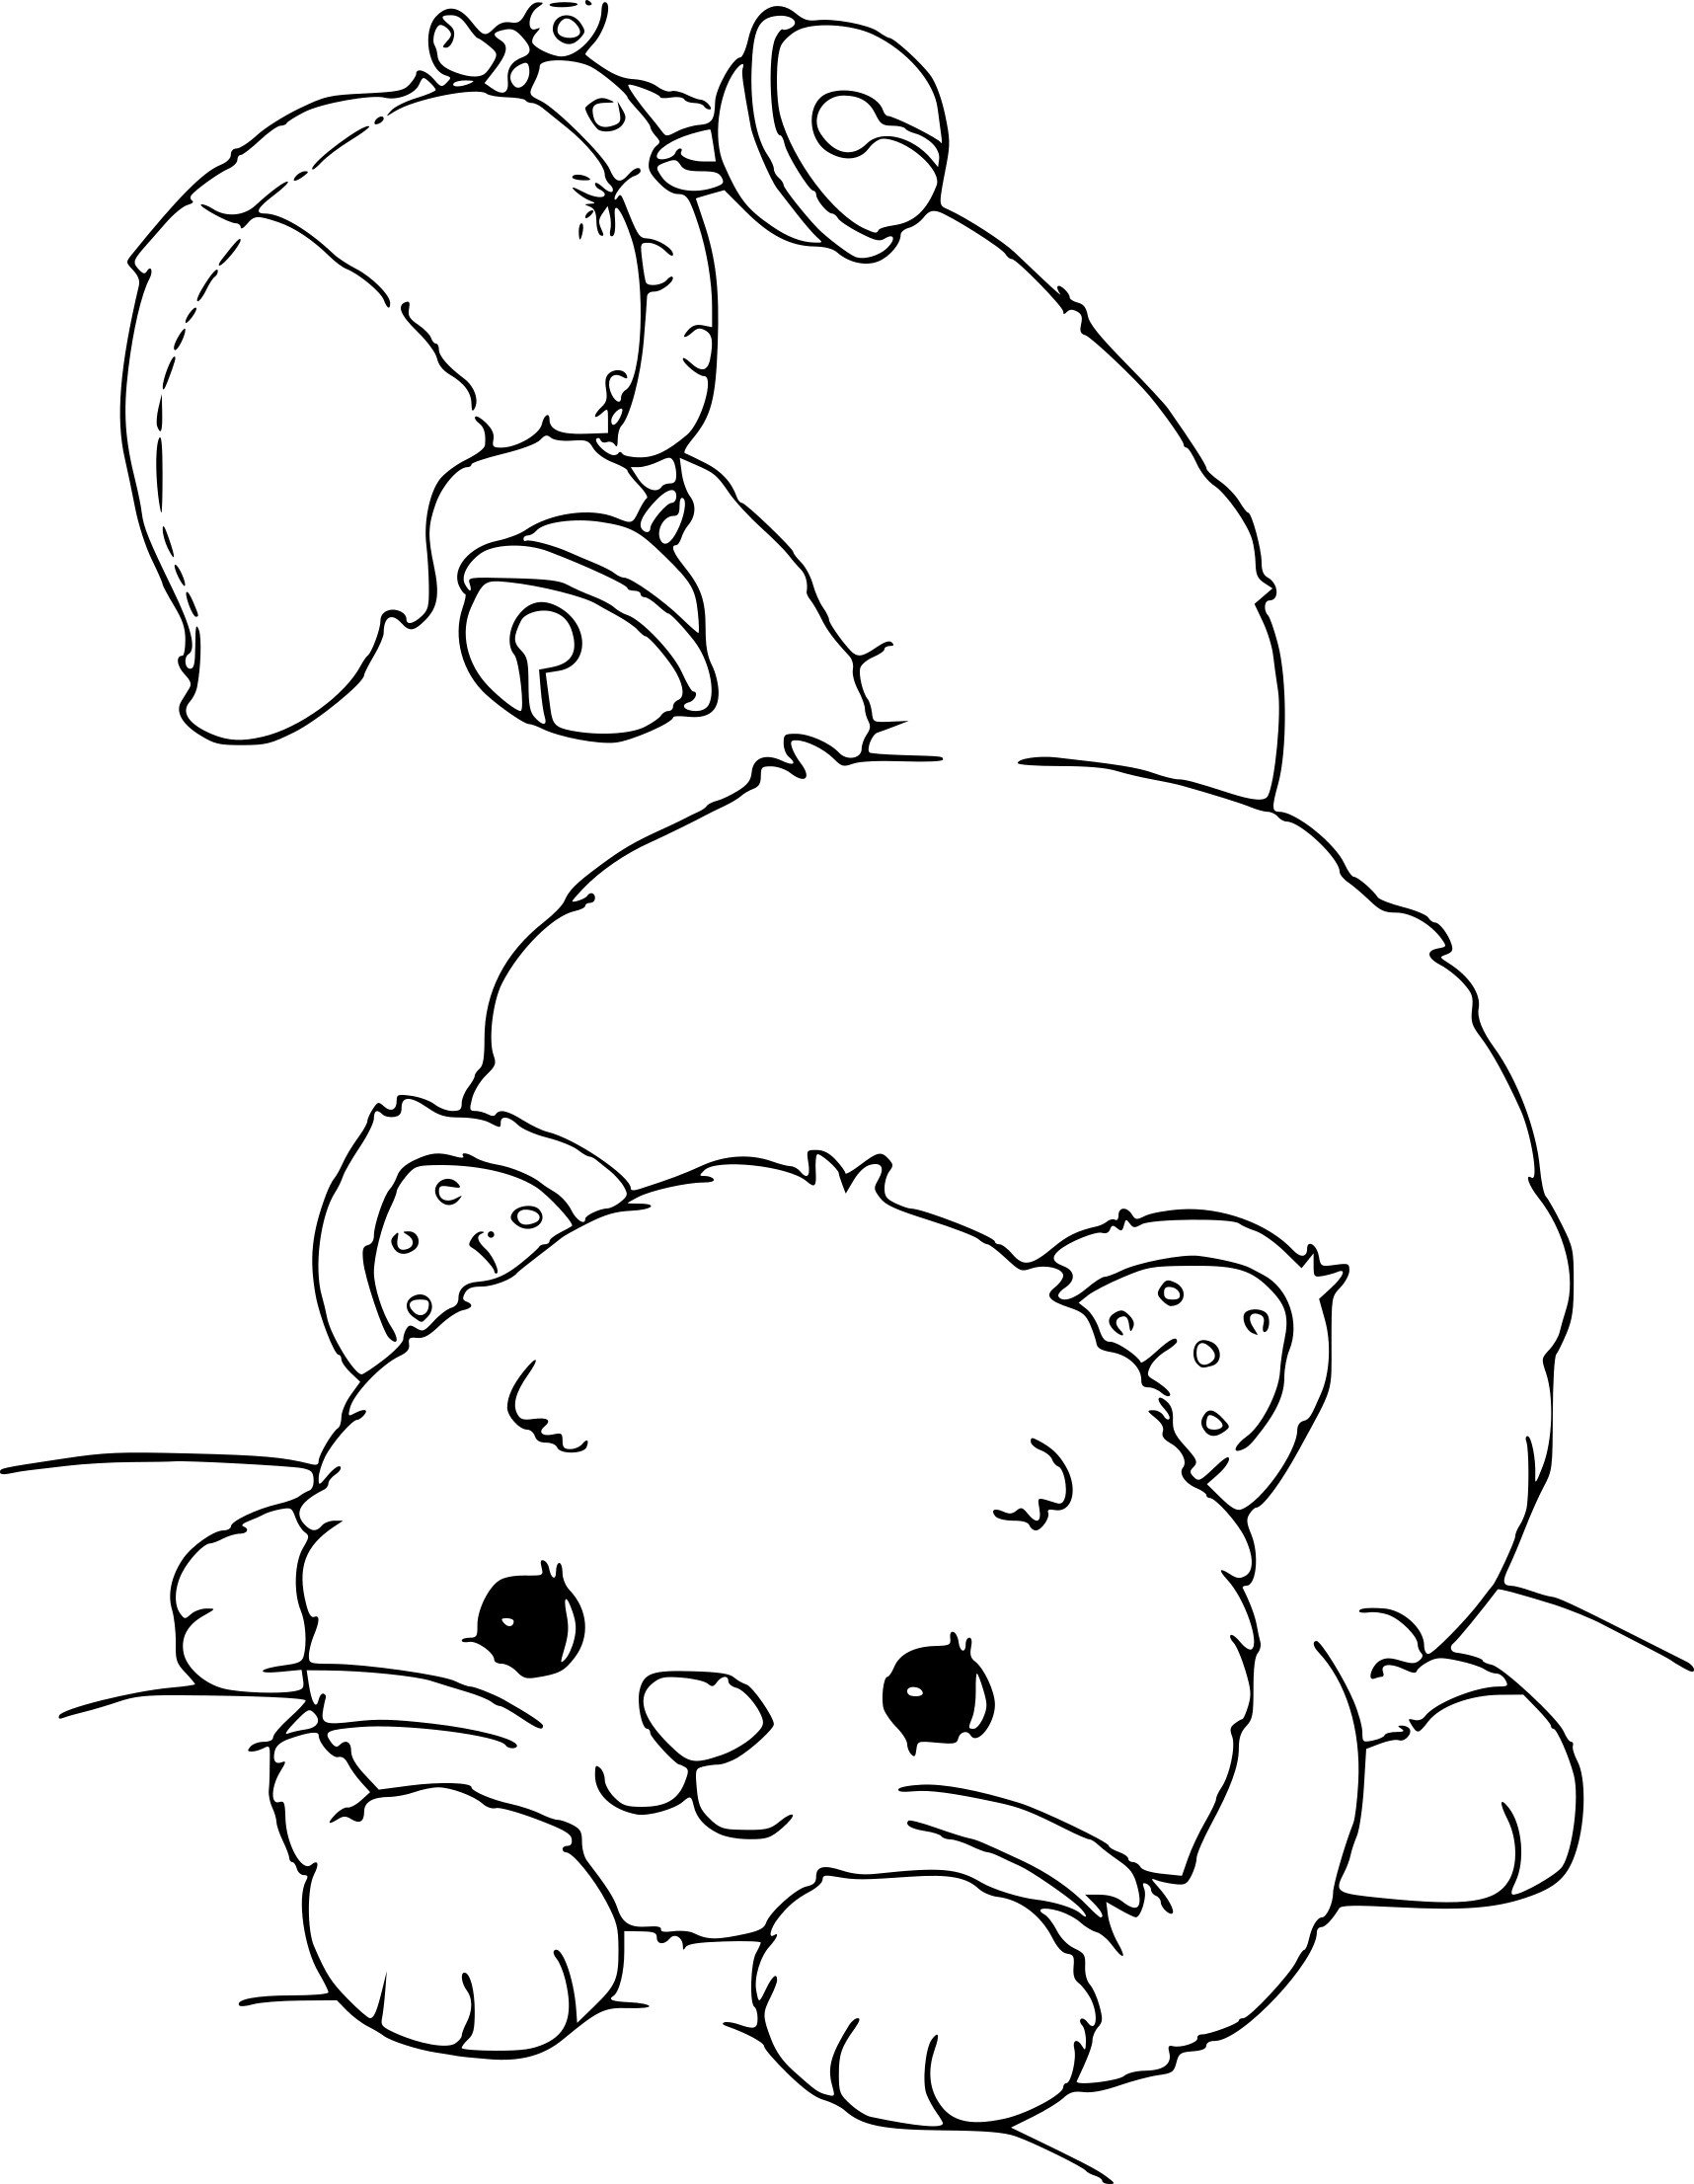 Coloriage Chat Noel.Coloriage Chat De Noel A Imprimer Sur Coloriages Info